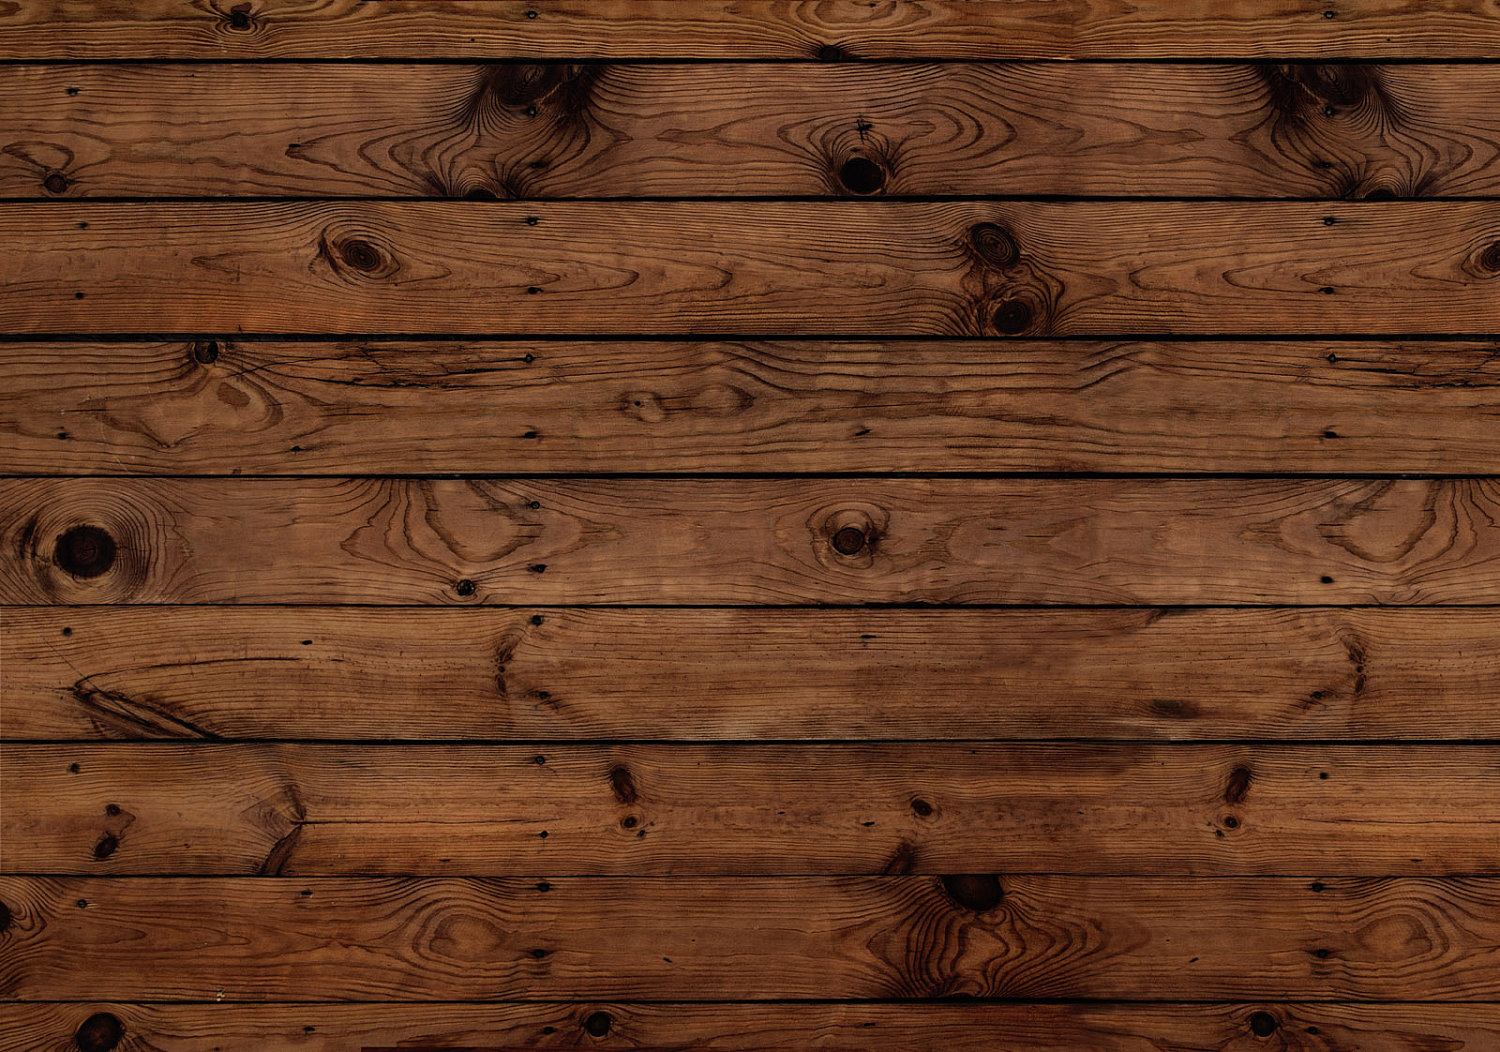 Darkwood Plank Faux Wood Rug Flooring Background or Floor Drop.